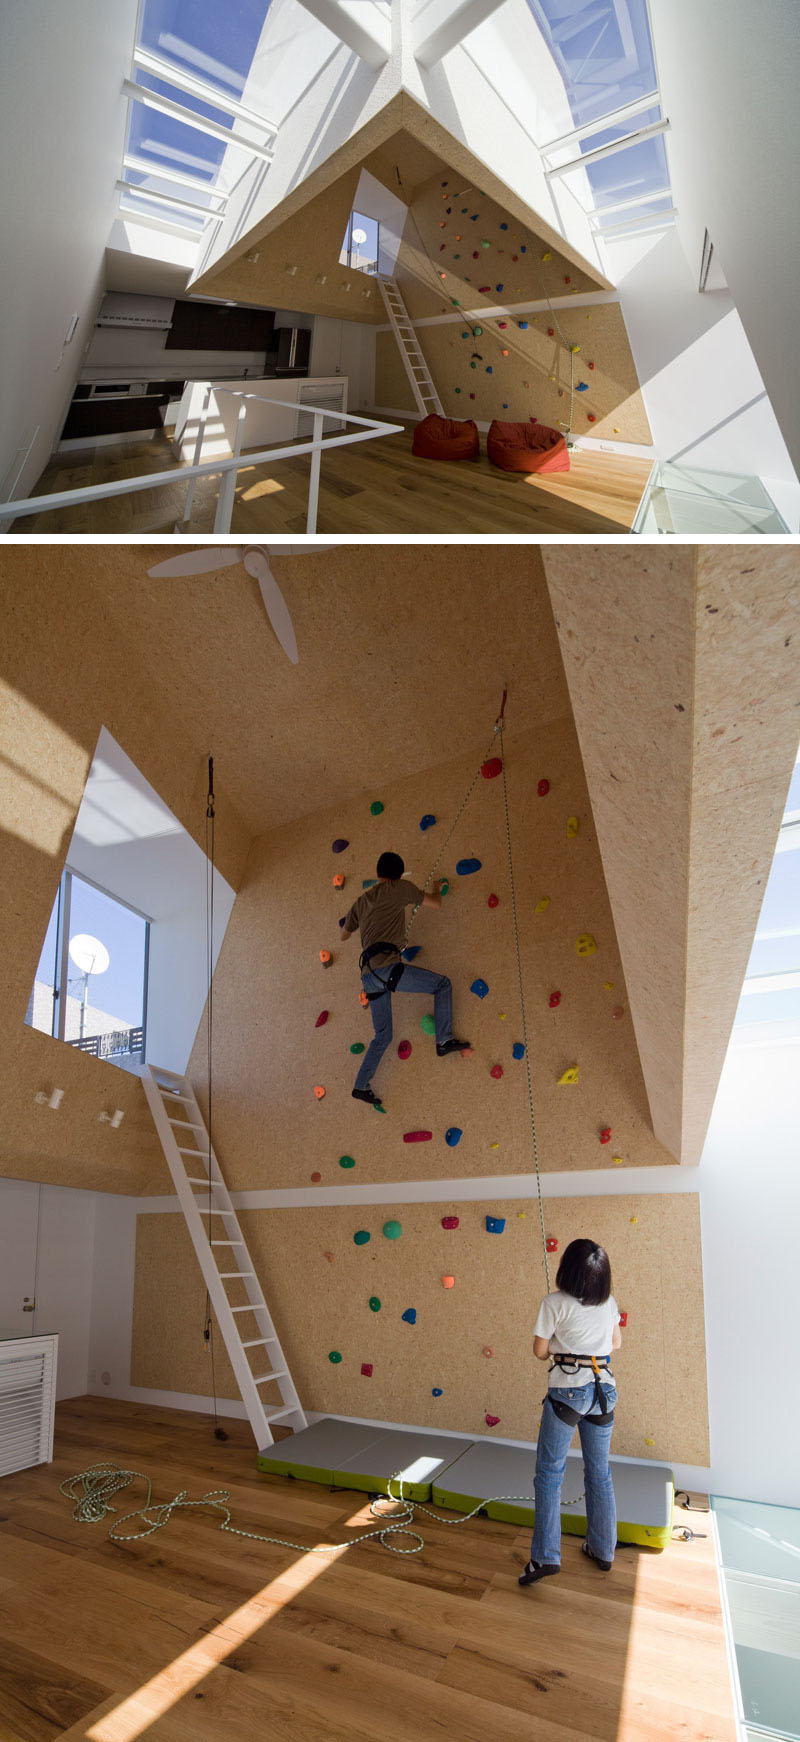 rock climbing wall in kitchen 22 Awesome Rock Climbing Wall Ideas For Your Home